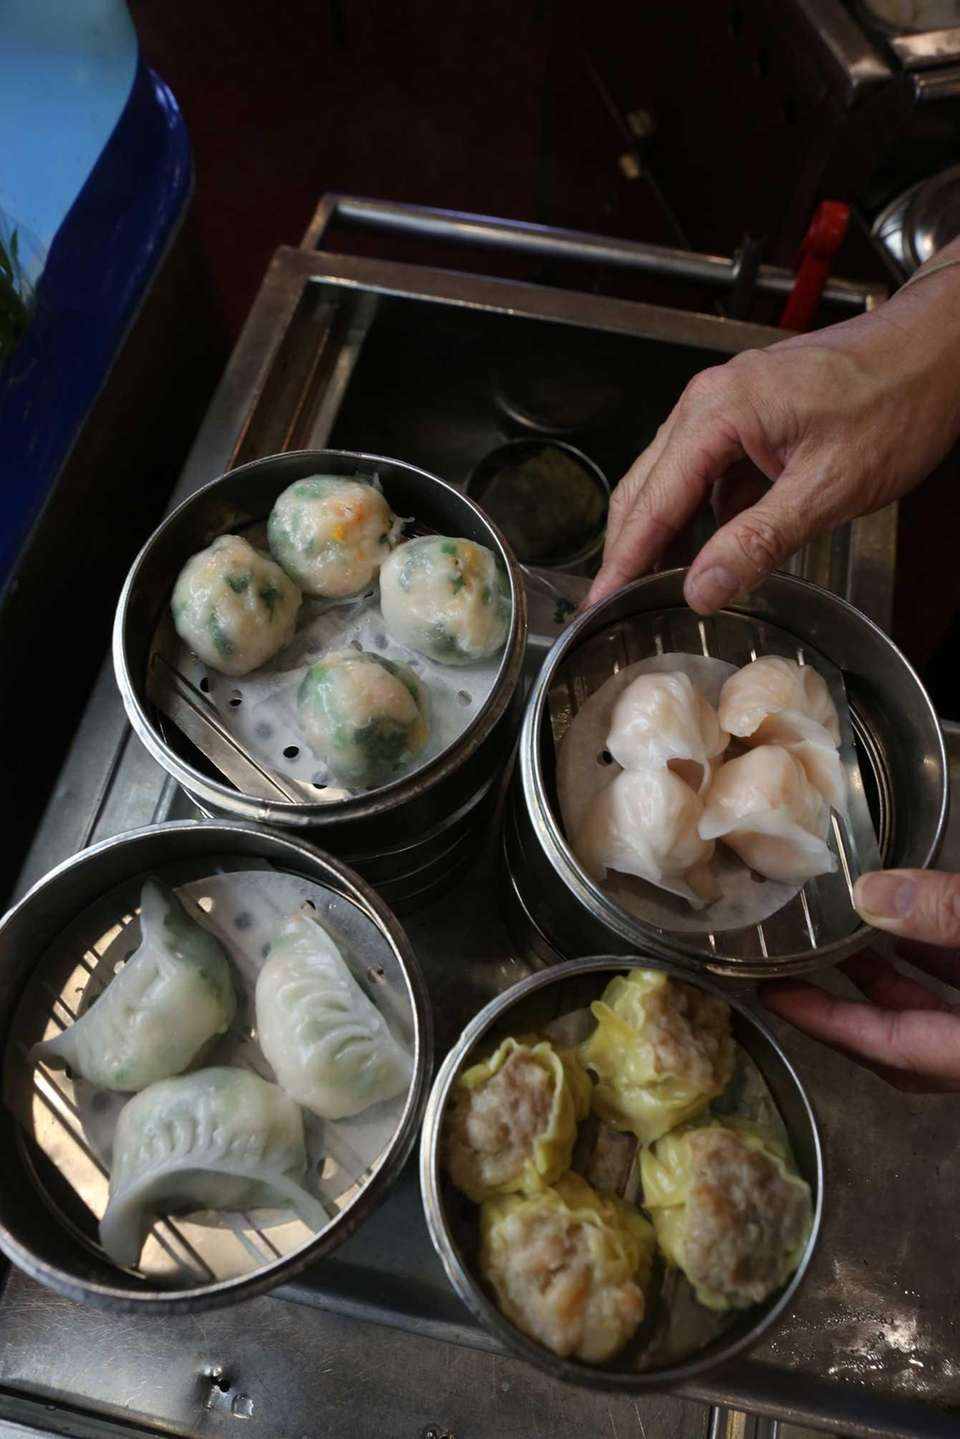 Chinese Crystal shrimp dumplings at Fortune Wheel, Levittown: